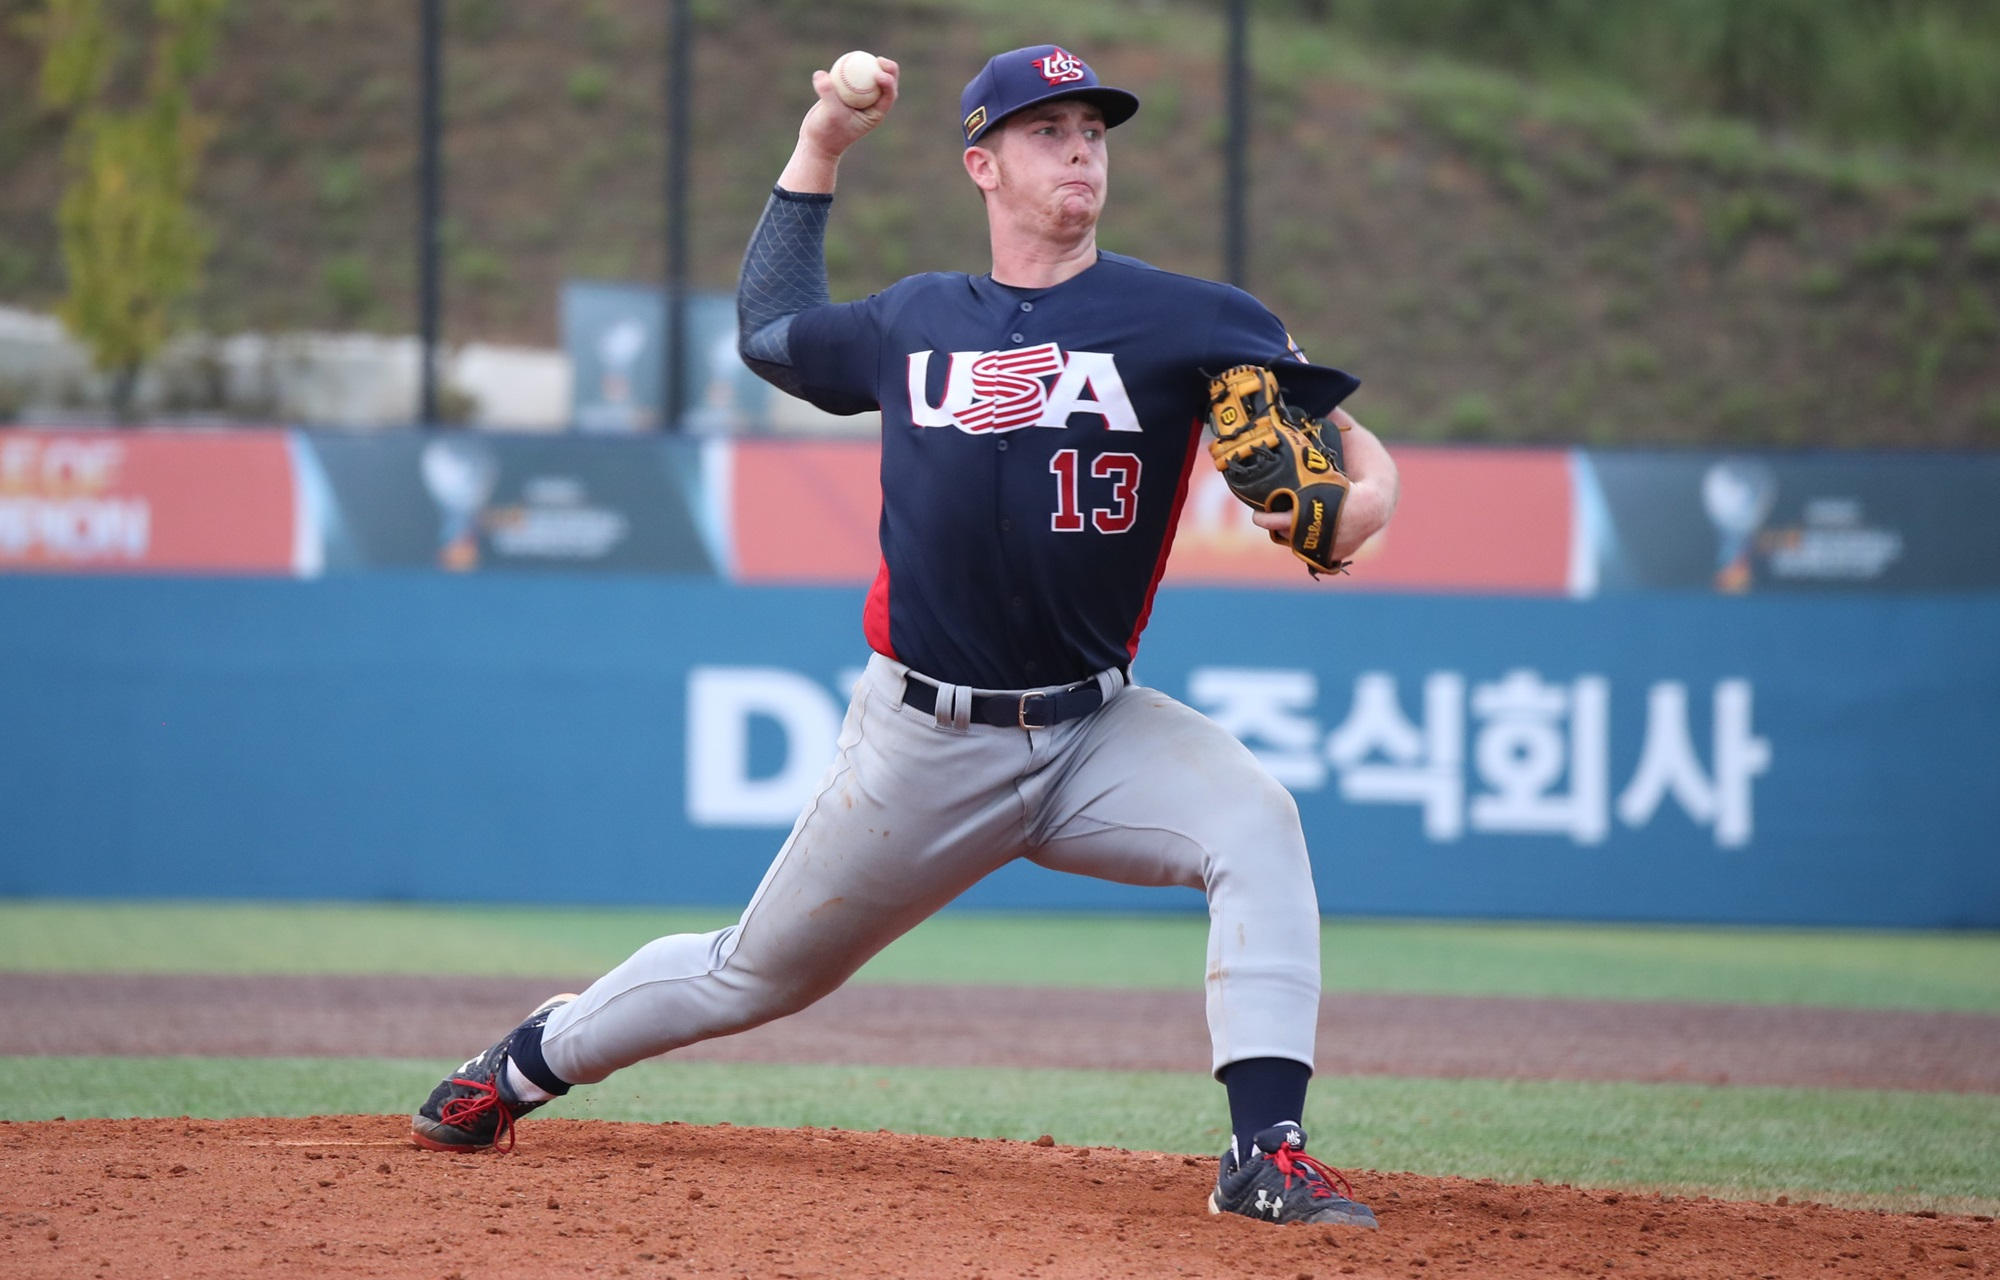 Nolan Mc Lean took the mound and gave the USA two scoreless innings